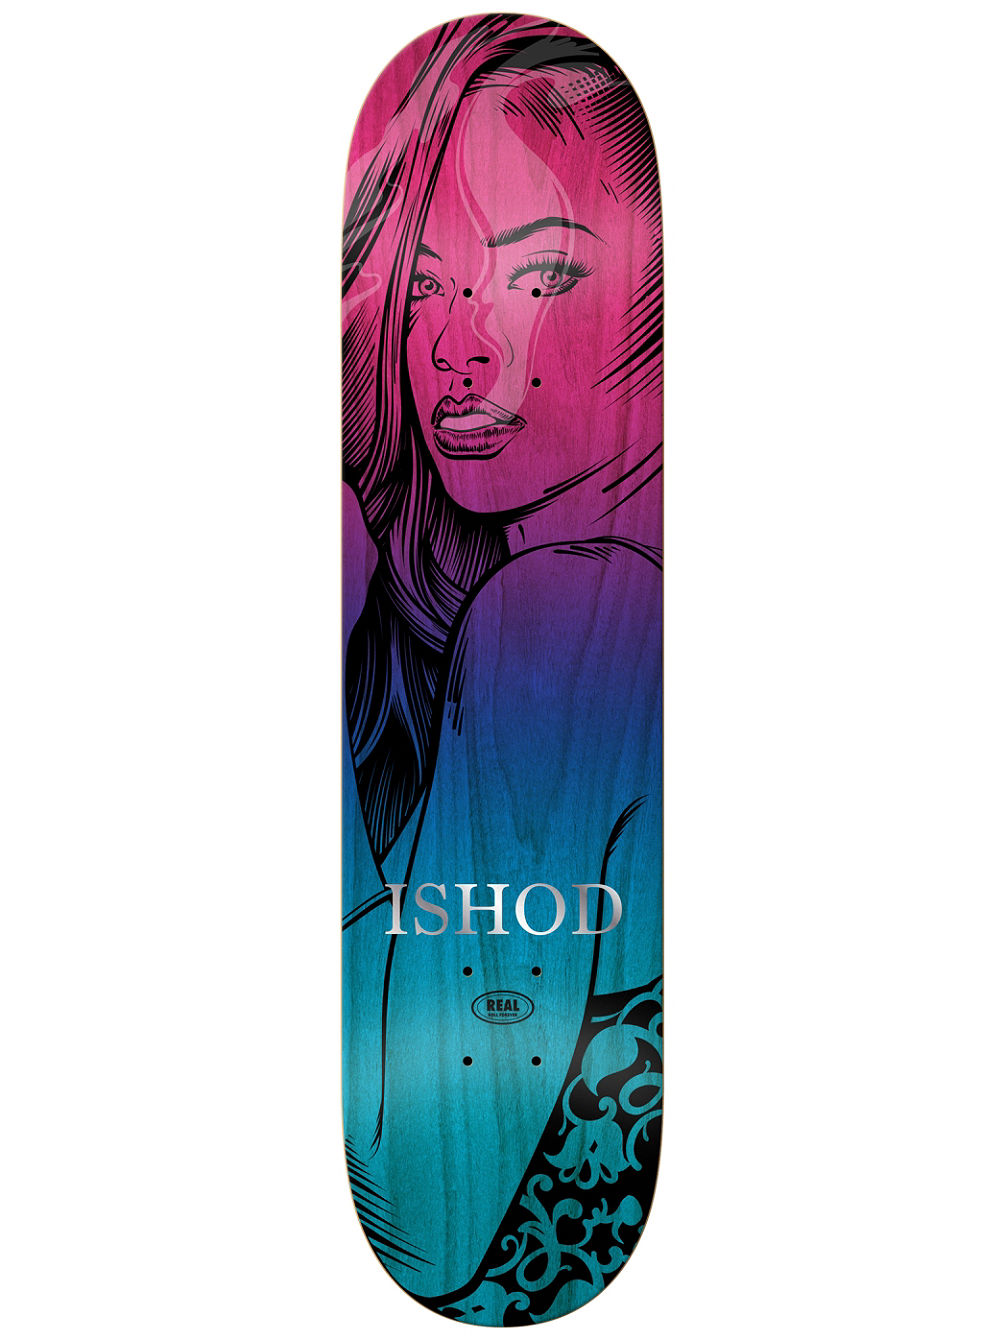 "Ishod Hotbox Faded 8.25"" Skate Deck"